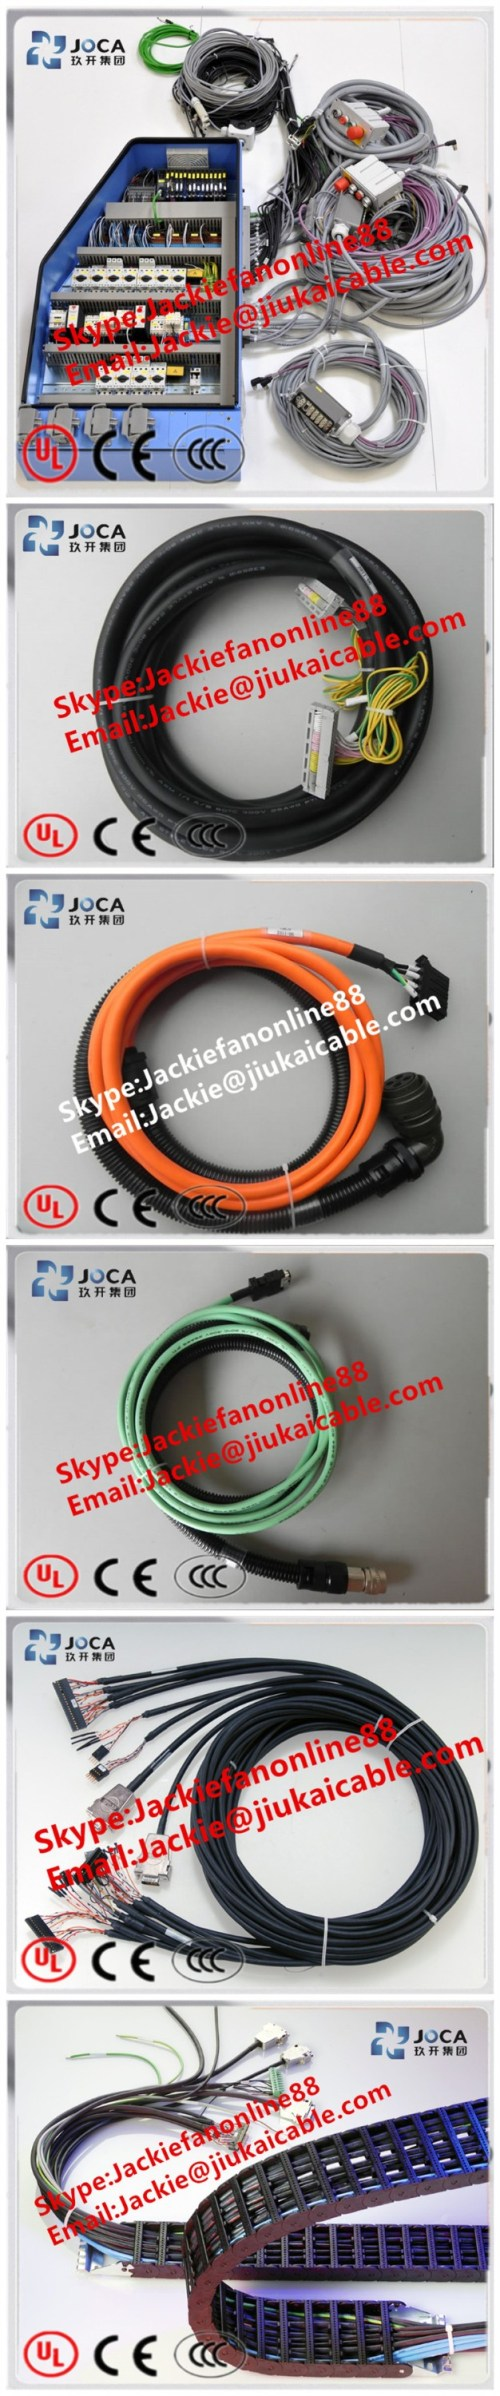 small resolution of fire resistance cable 4 sqmm can bus cable j1939 11 sae shielded drain